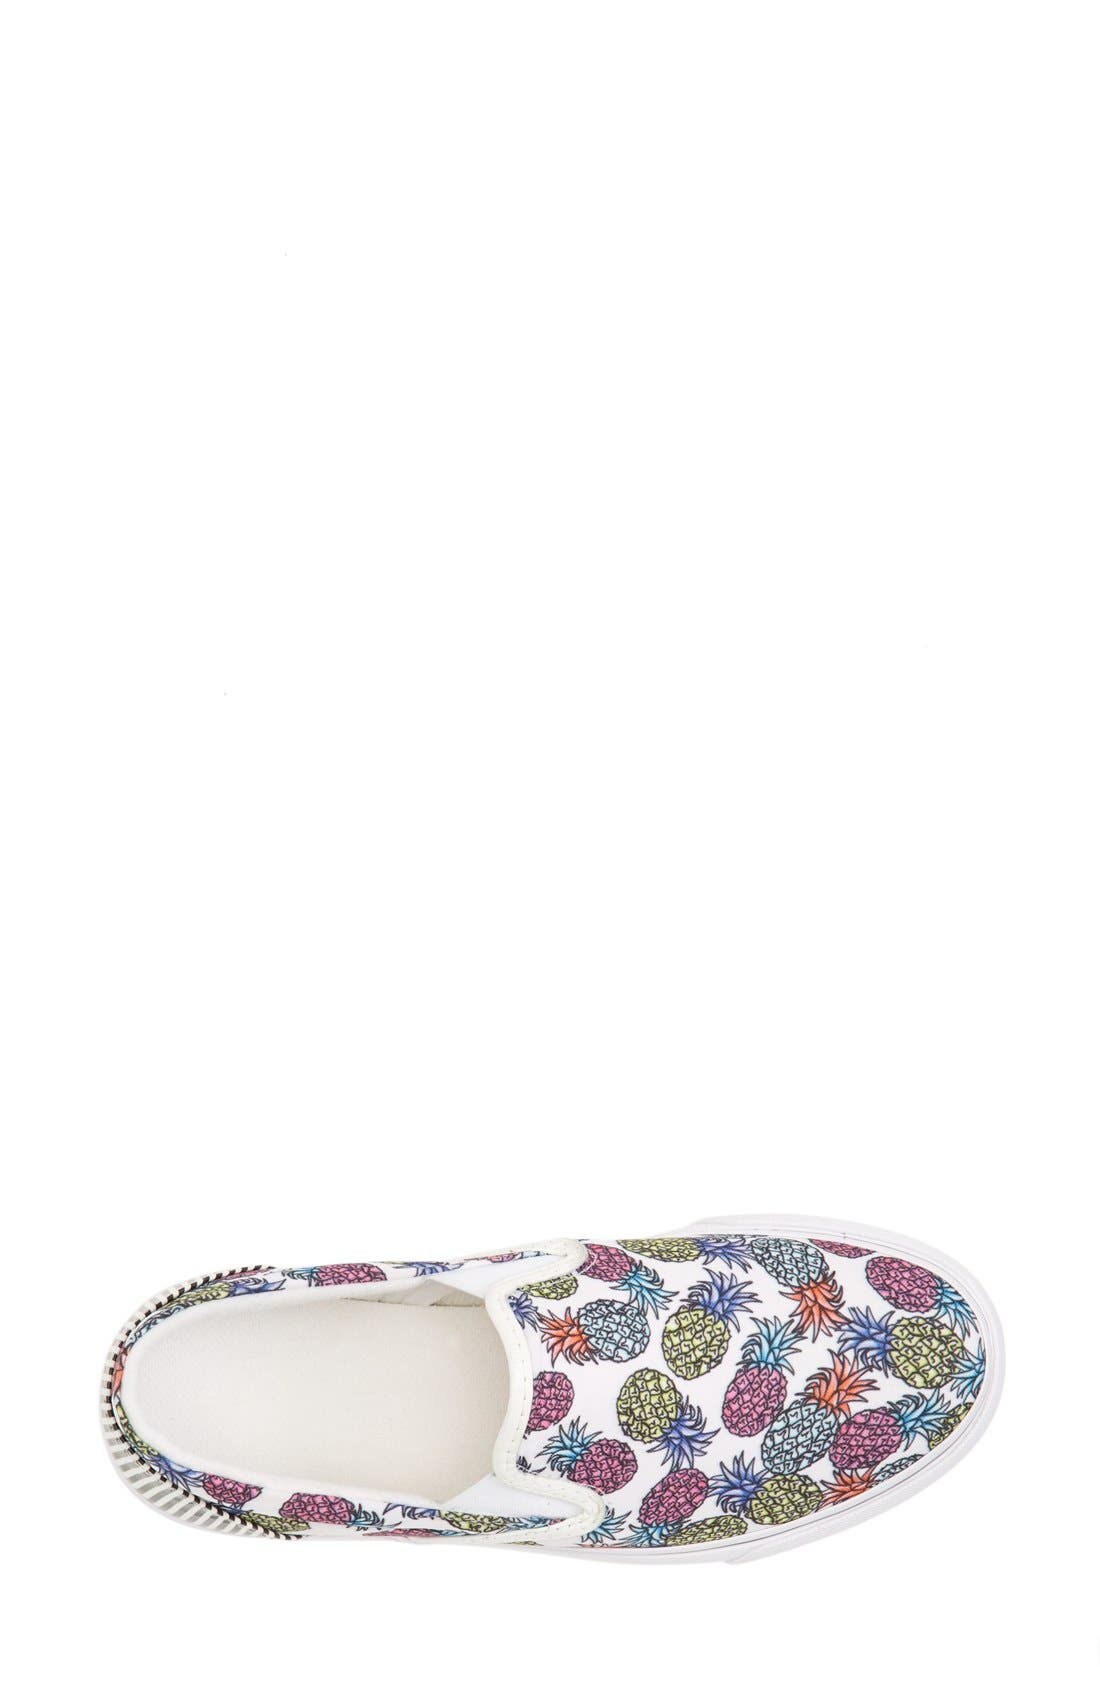 Alternate Image 3  - Sophia Webster 'Adele - Pineapple' Satin Slip-On Sneaker (Women)